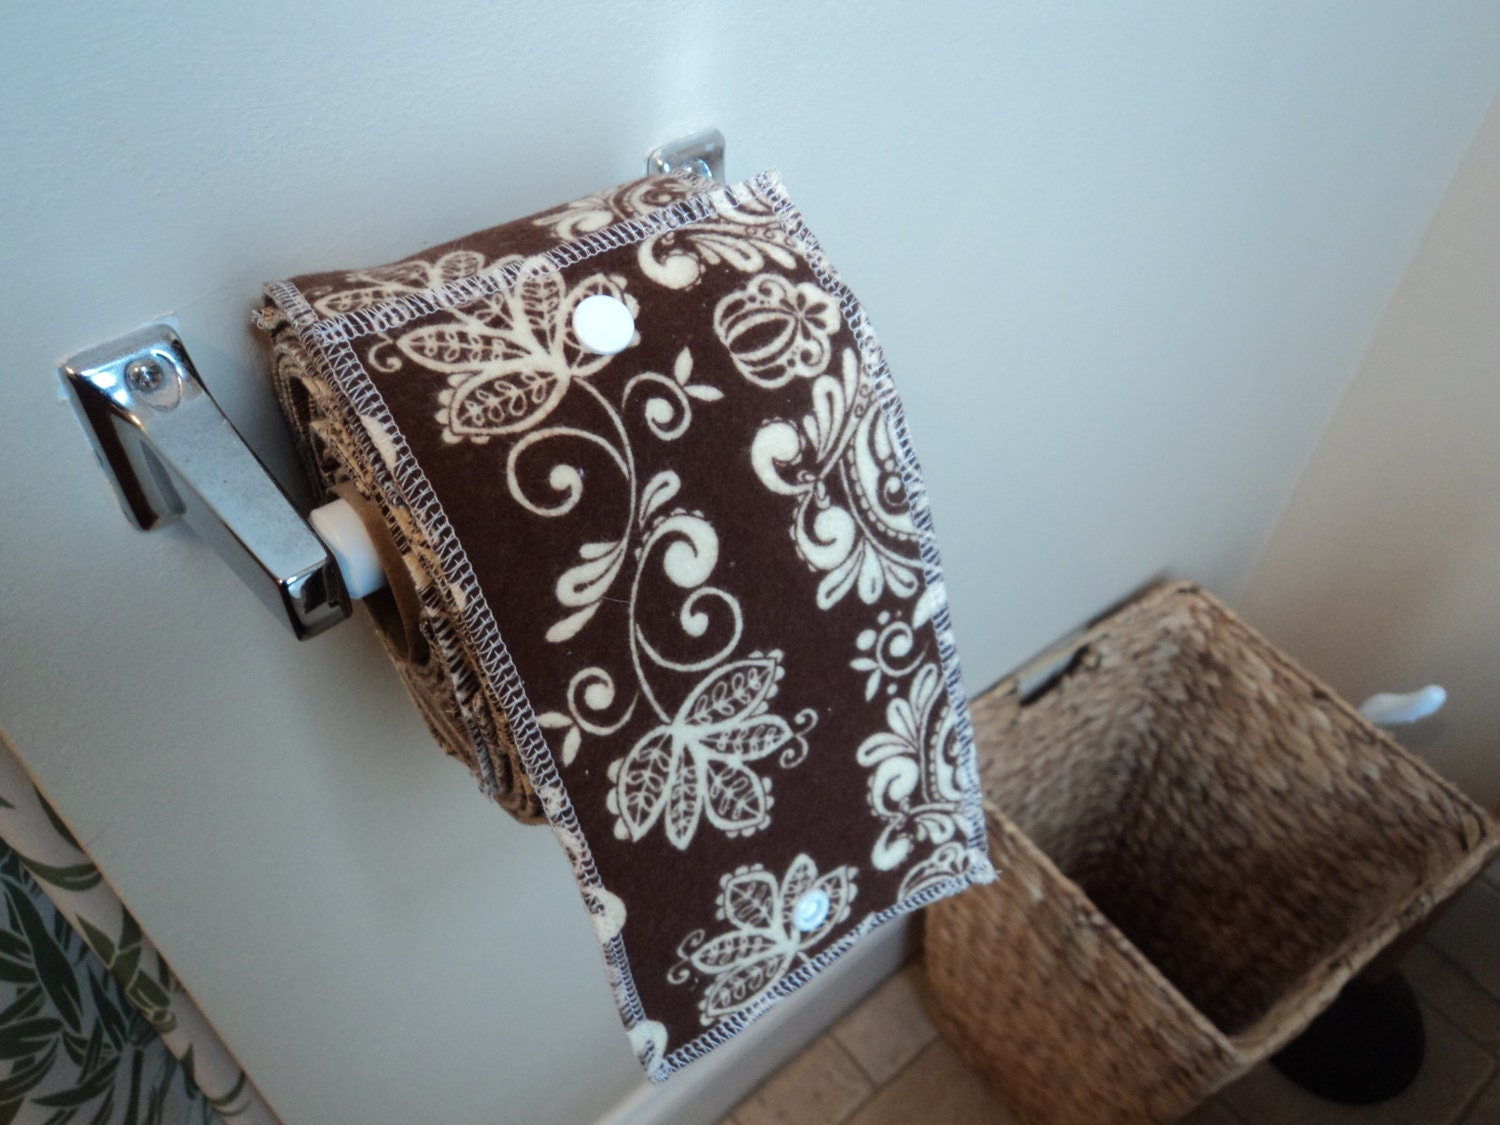 Last One Roll Of 20 Family Cloth Cloth Toilet